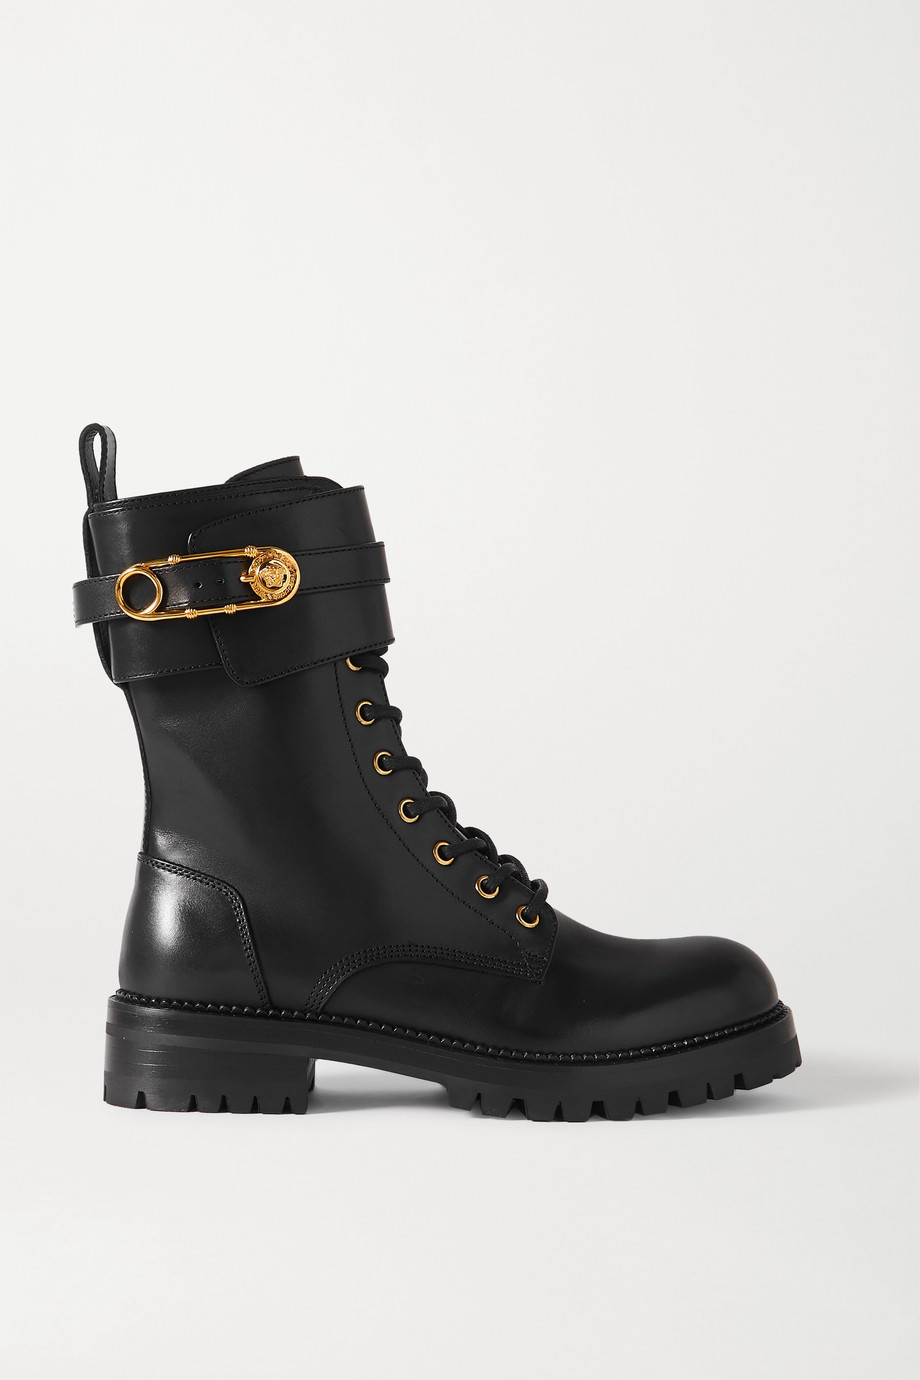 Versace Bottines en cuir à ornements